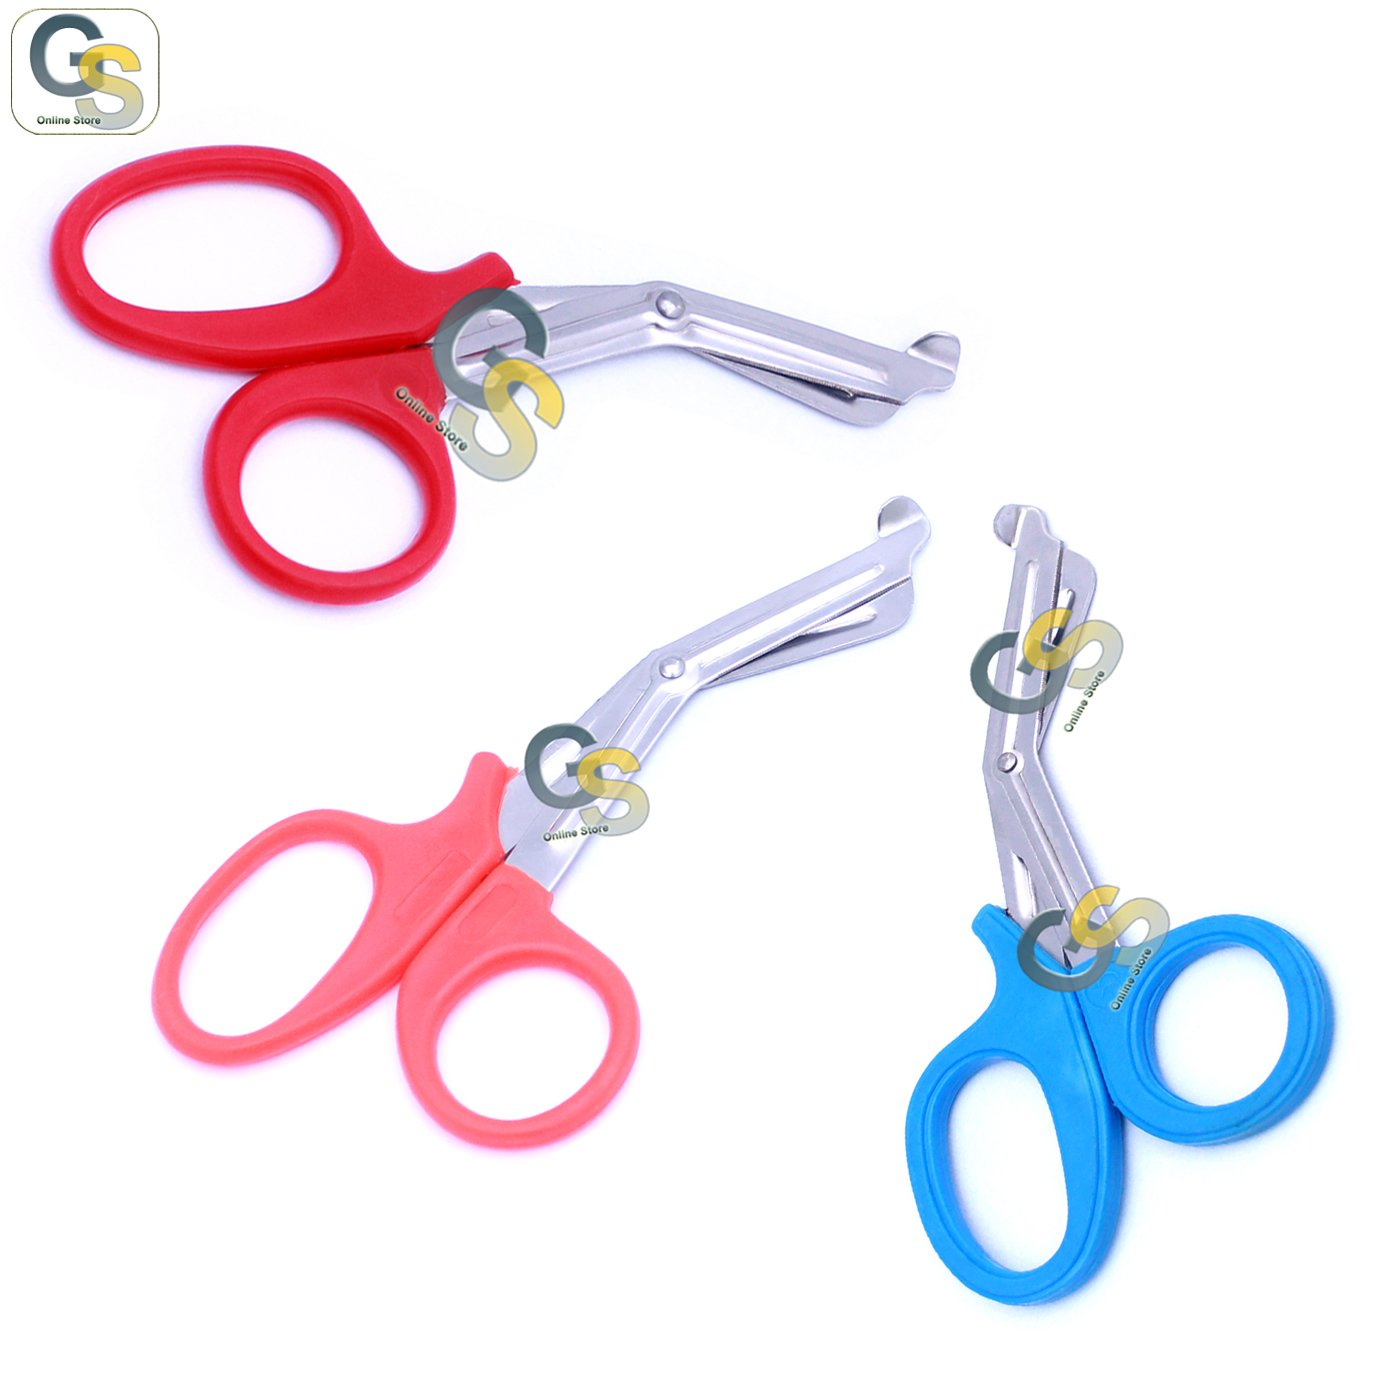 G.S 3 PCS (RED & PINK & SKY BLUE) PARAMEDIC UTILITY BANDAGE TRAUMA EMT EMS SHEARS SCISSORS 7.25 INCH STAINLESS STEEL